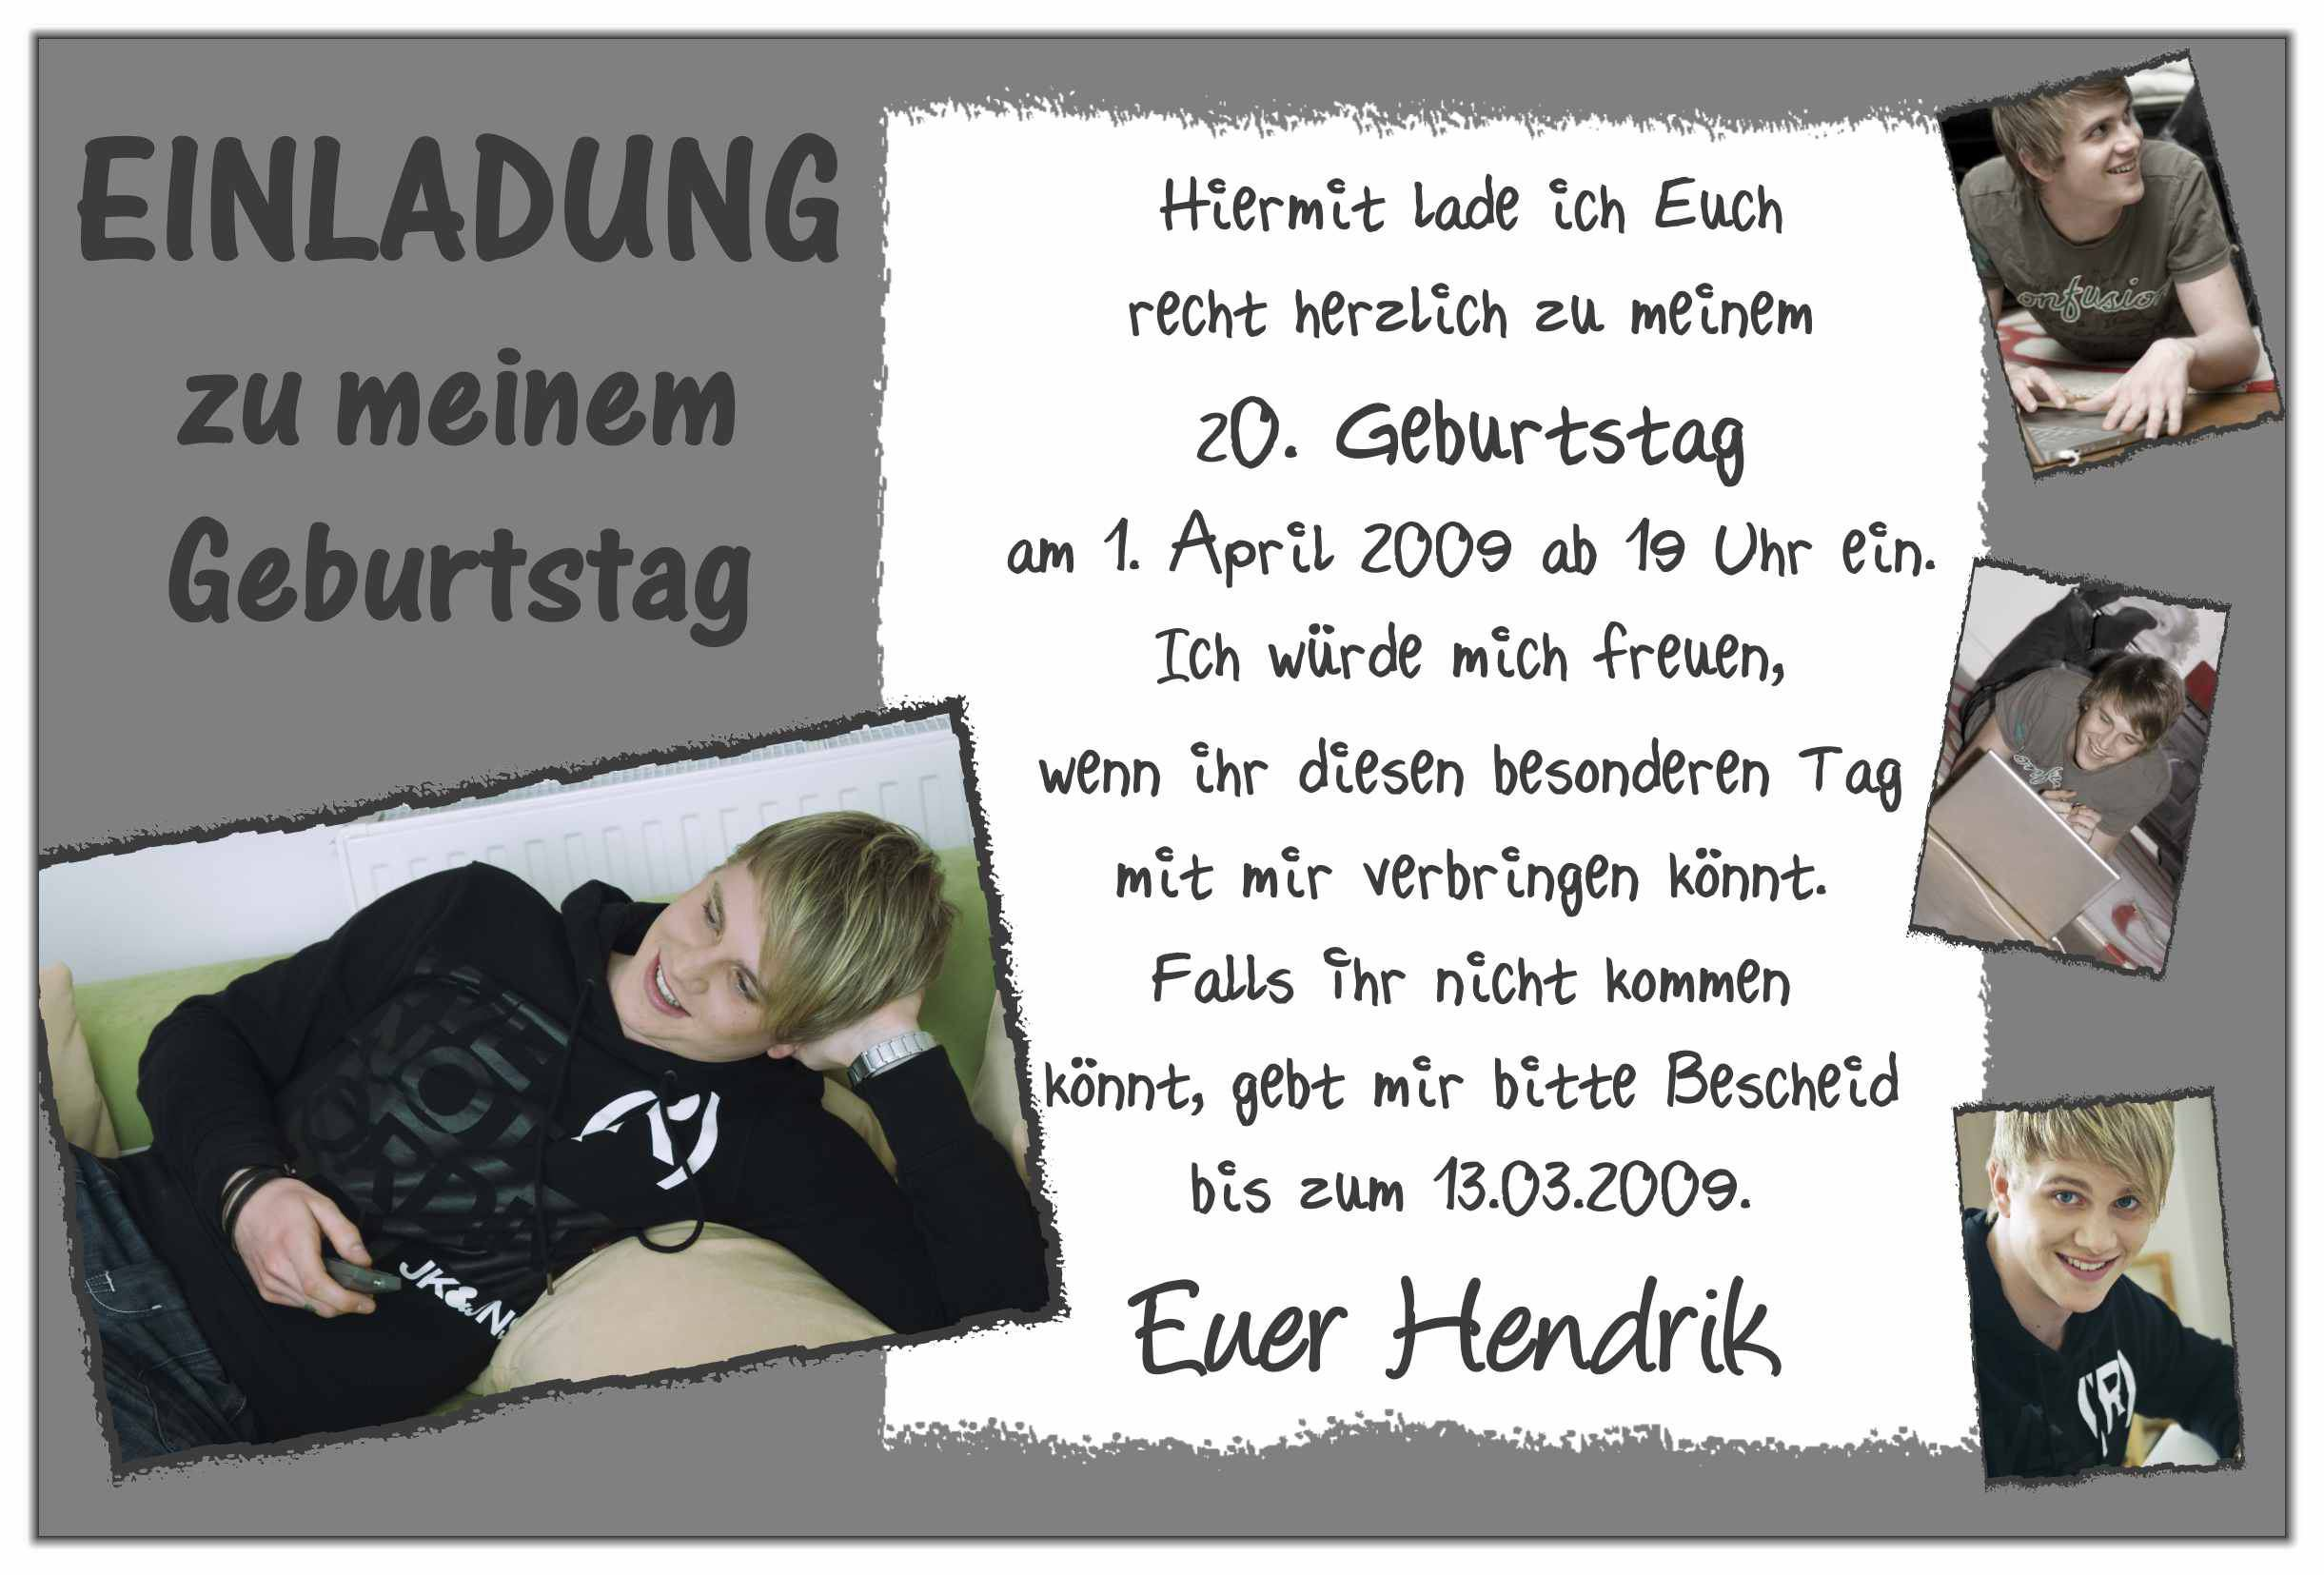 einladung geburtstag einladung zum 30 geburtstag geburstag einladungskarten geburstag. Black Bedroom Furniture Sets. Home Design Ideas